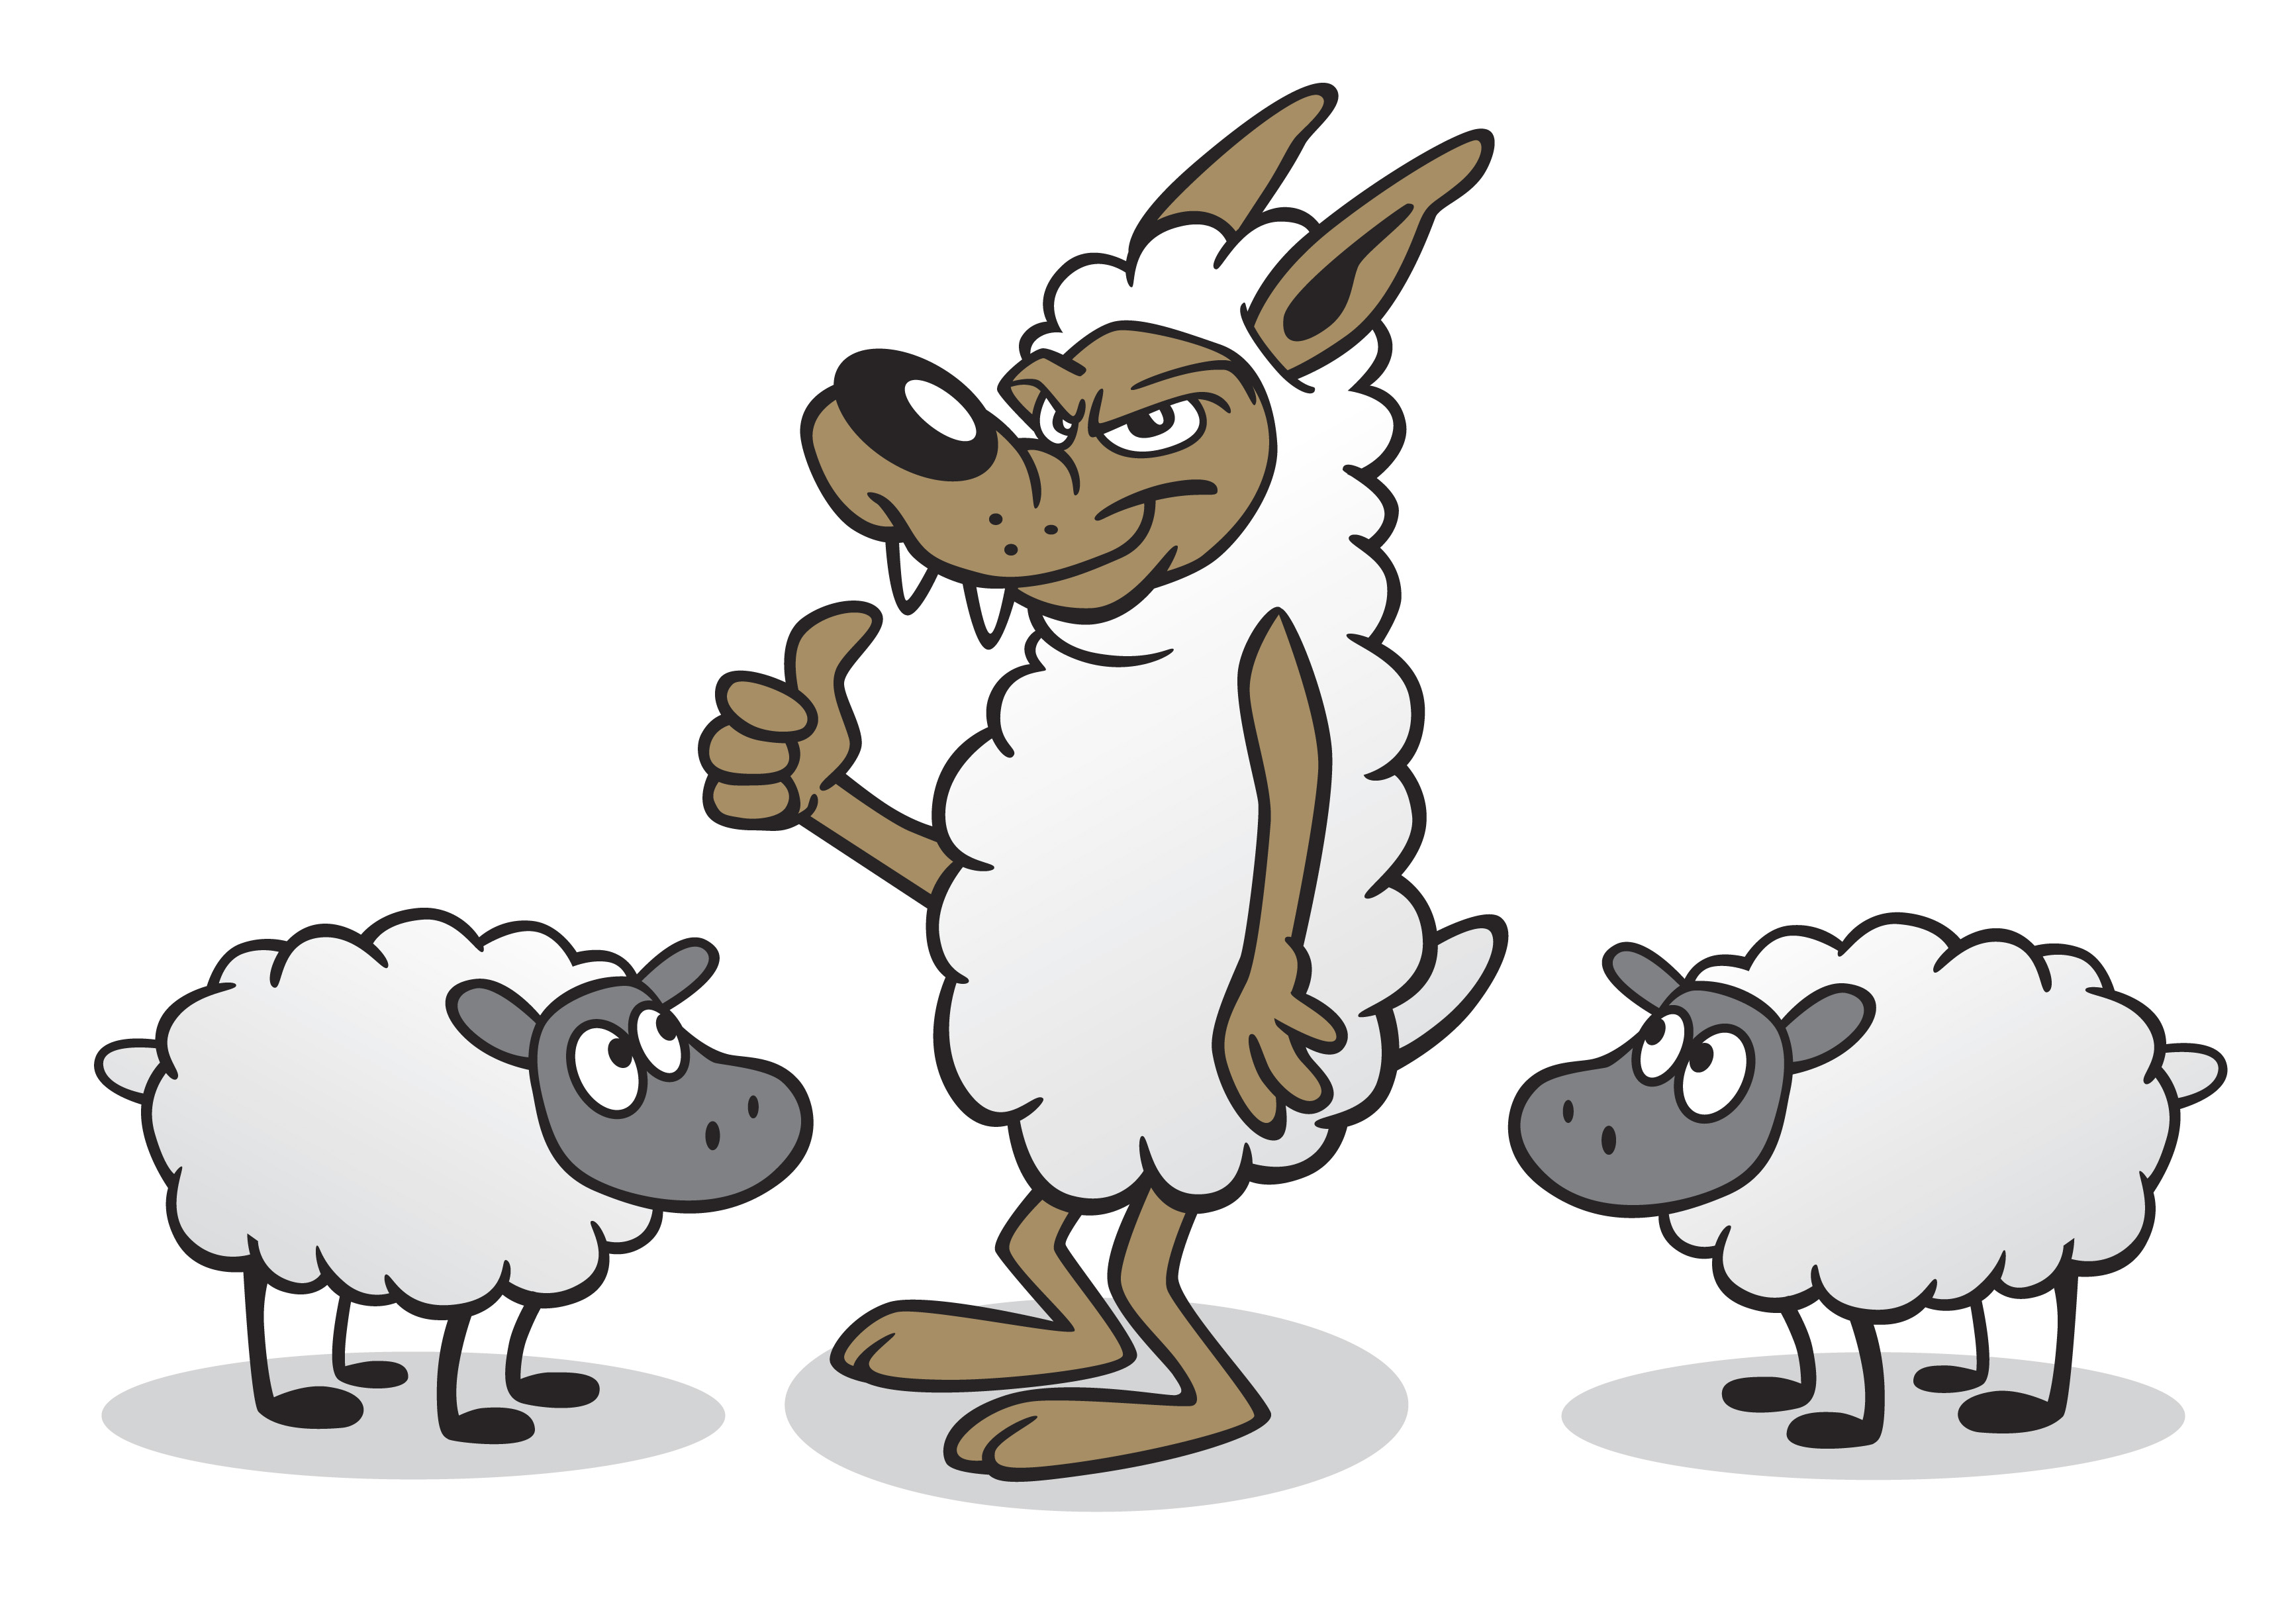 a wolf in sheep u2019s clothing queen victoria chalice clipart border chalice clipart border